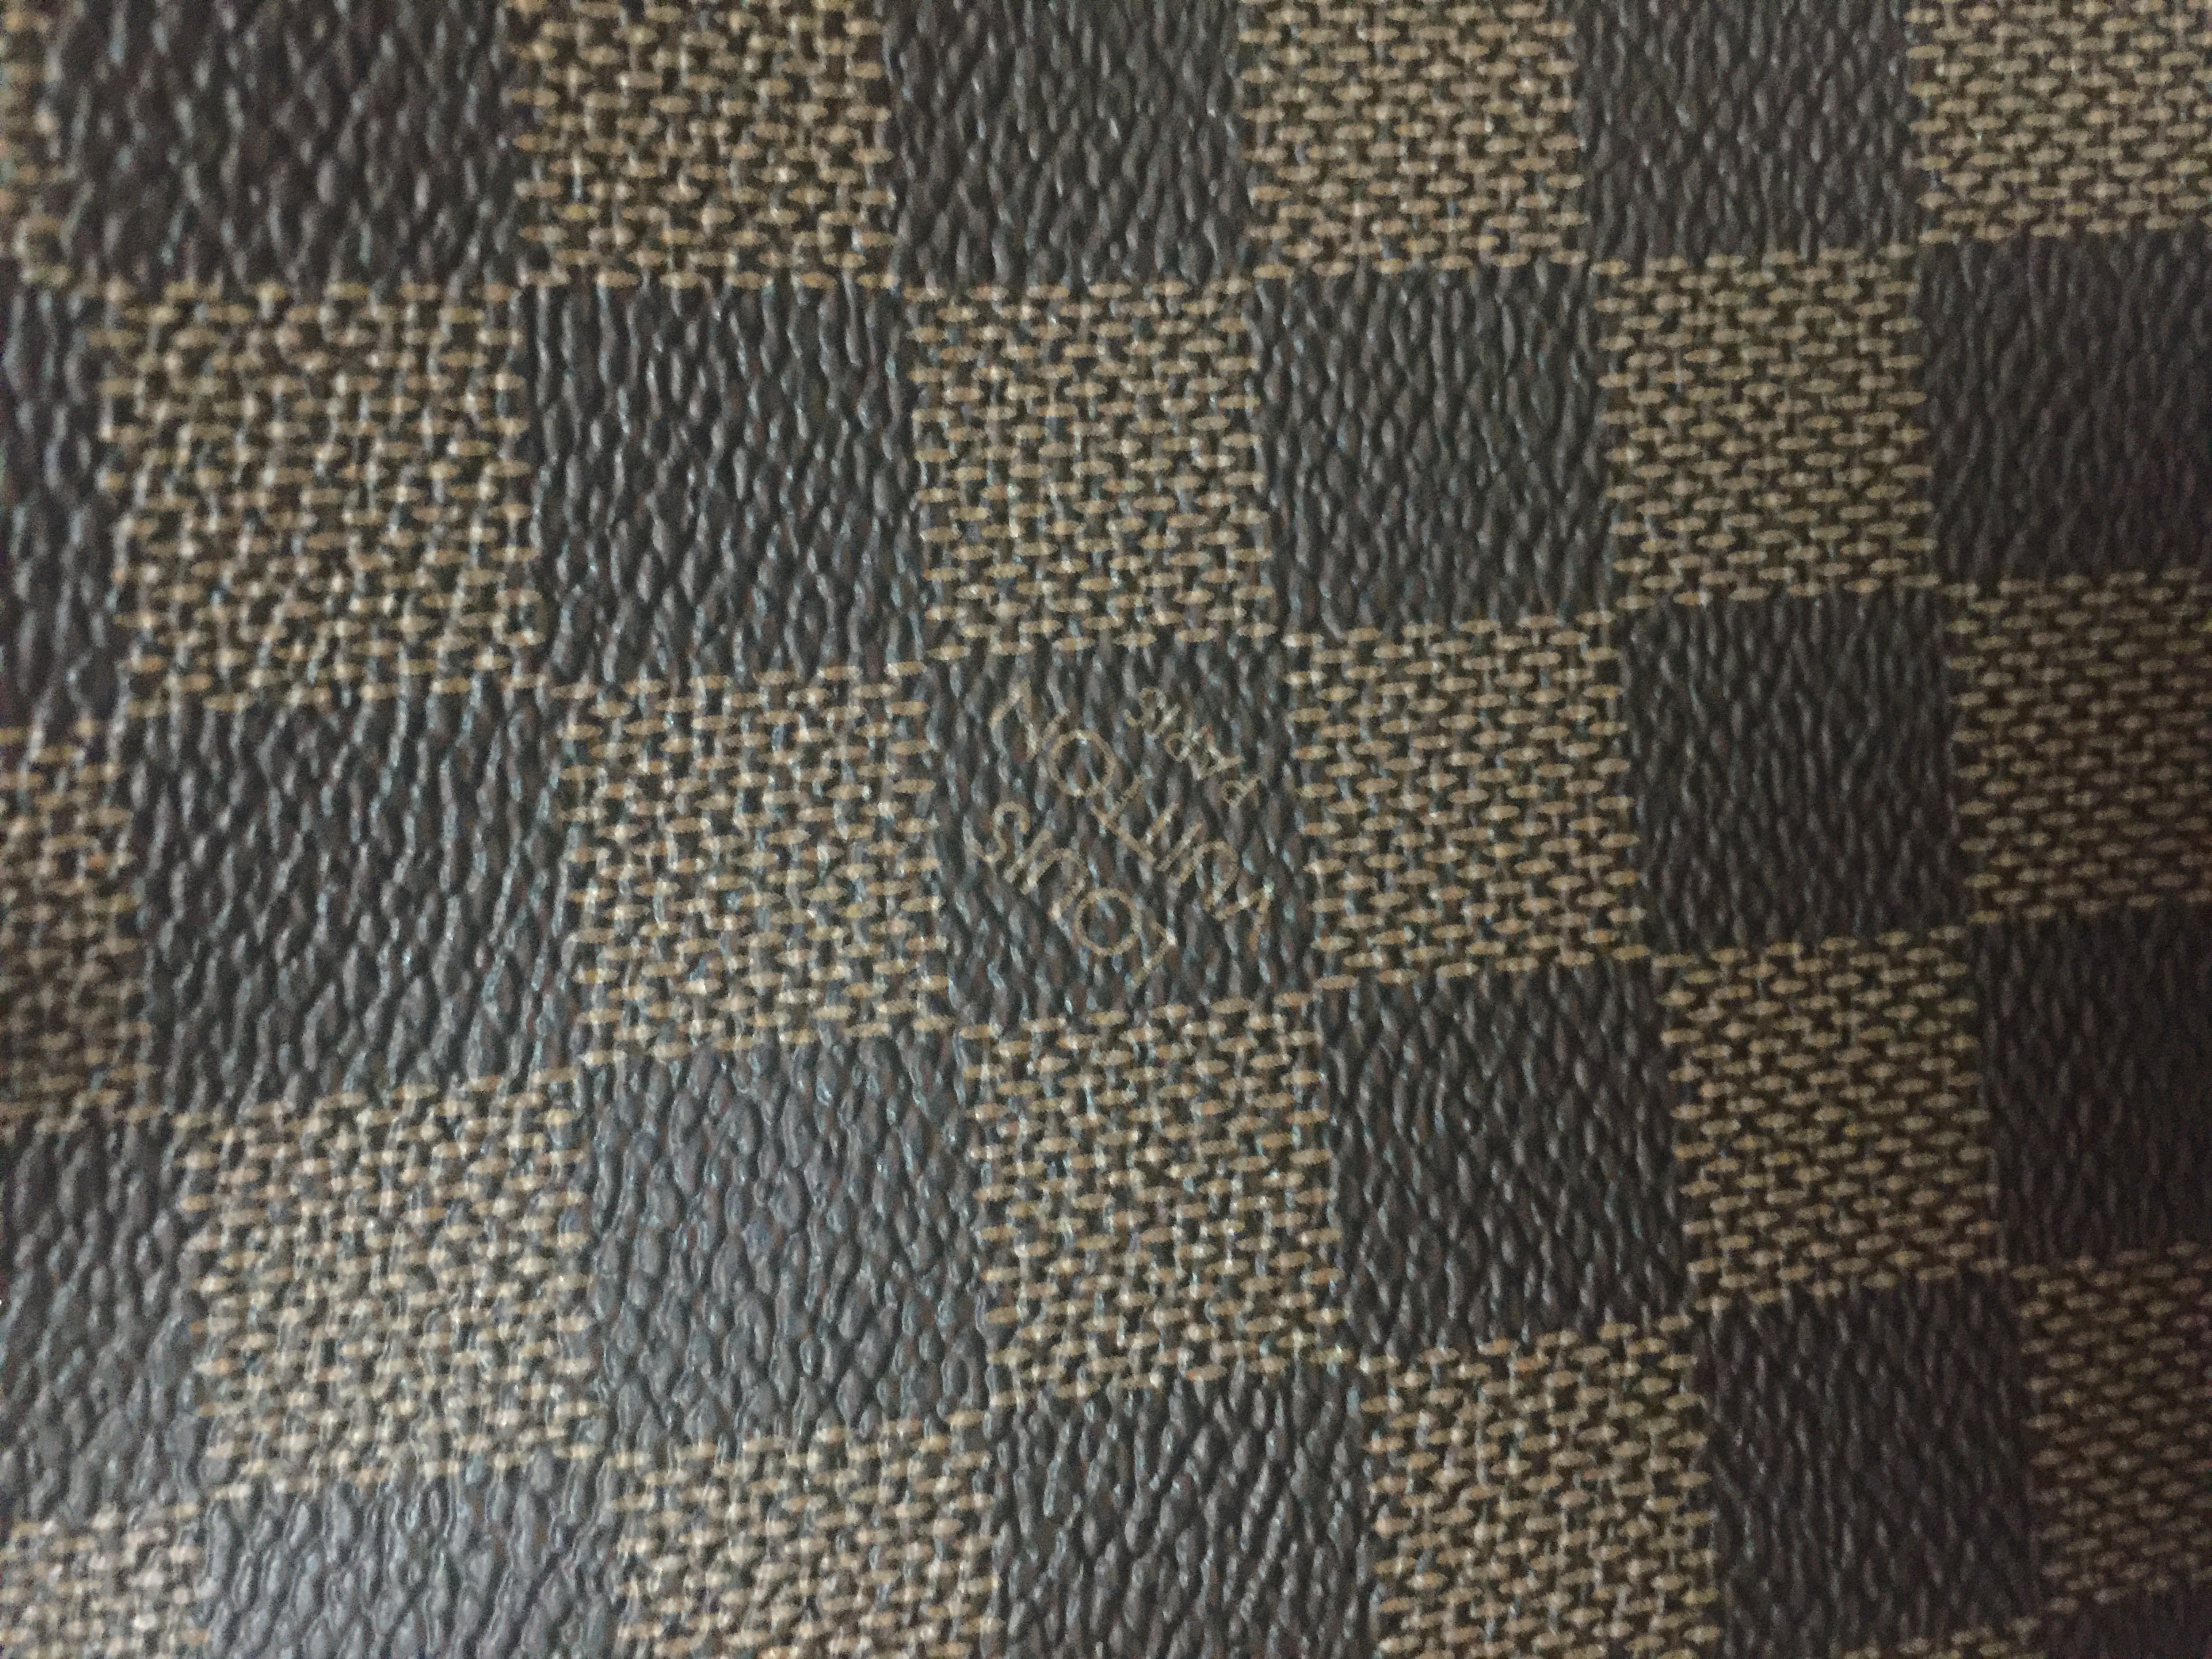 cfbd0f9f61d2 It is speedy 30 damier ebene size 30. The bag is new. The seller advised me  to go to lv store for heat stamping for authentication.